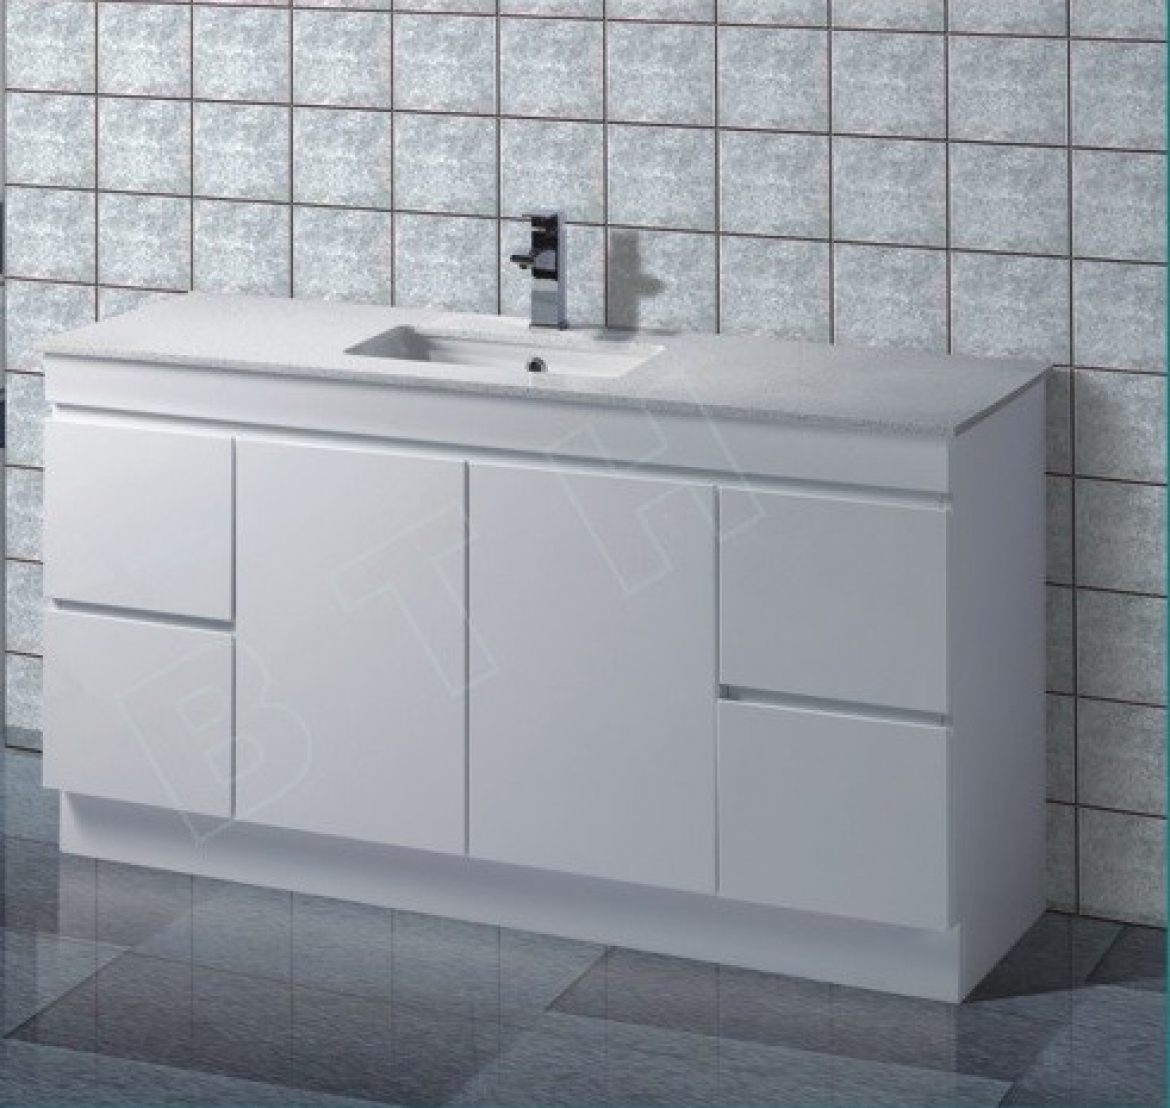 Bathroom stone top vanity [Single Basin-1200 mm]